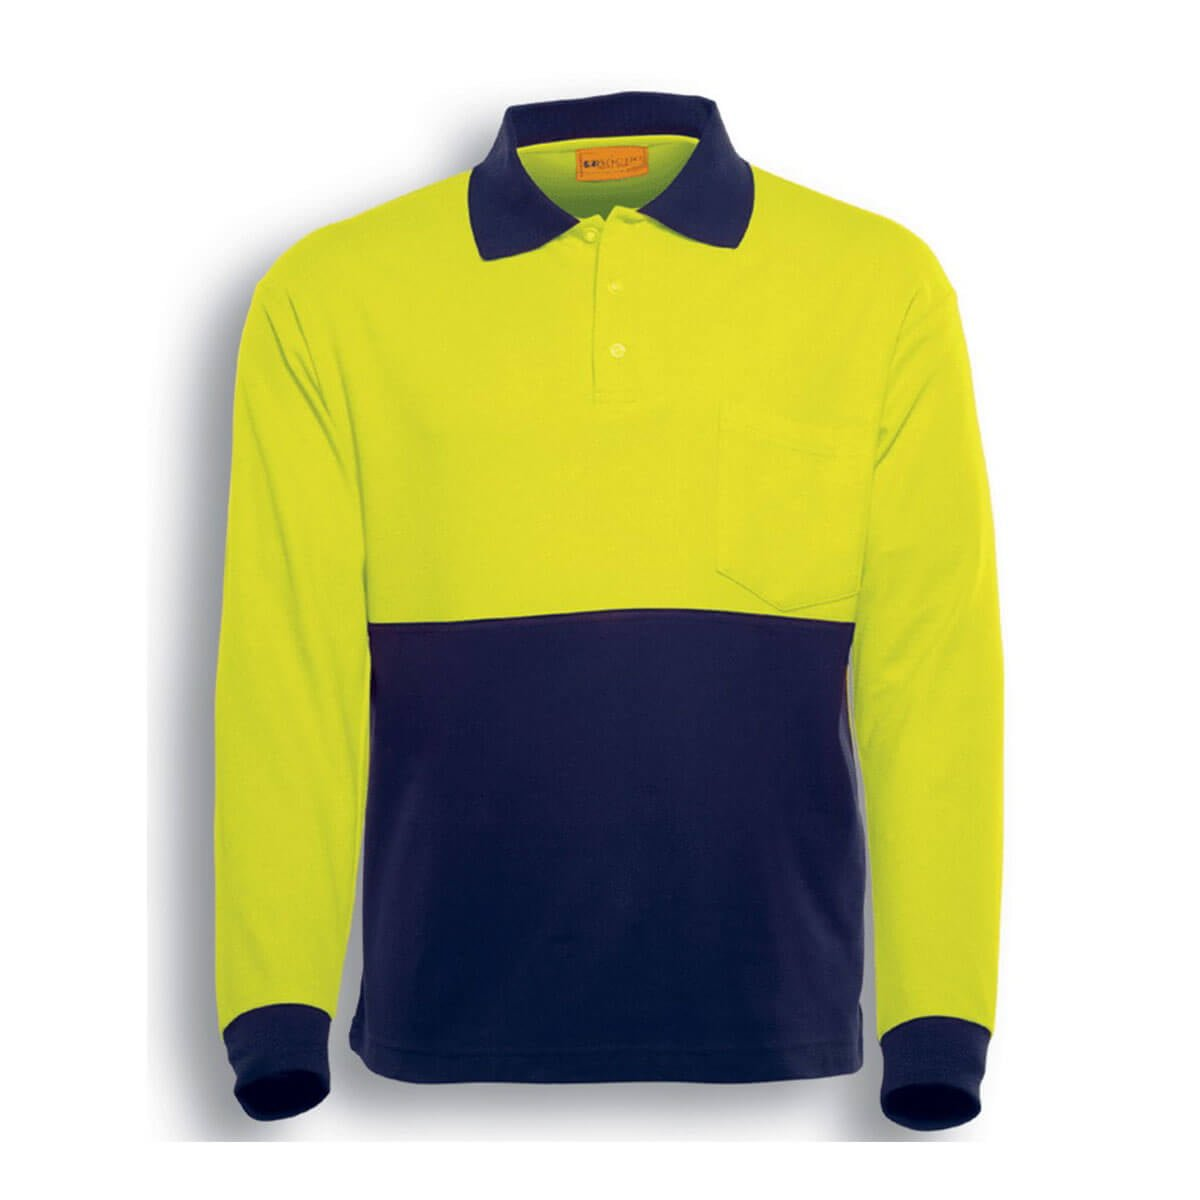 HI-VIS POLY/COTTON POLO -LONG SLEEVE-Lime / Navy